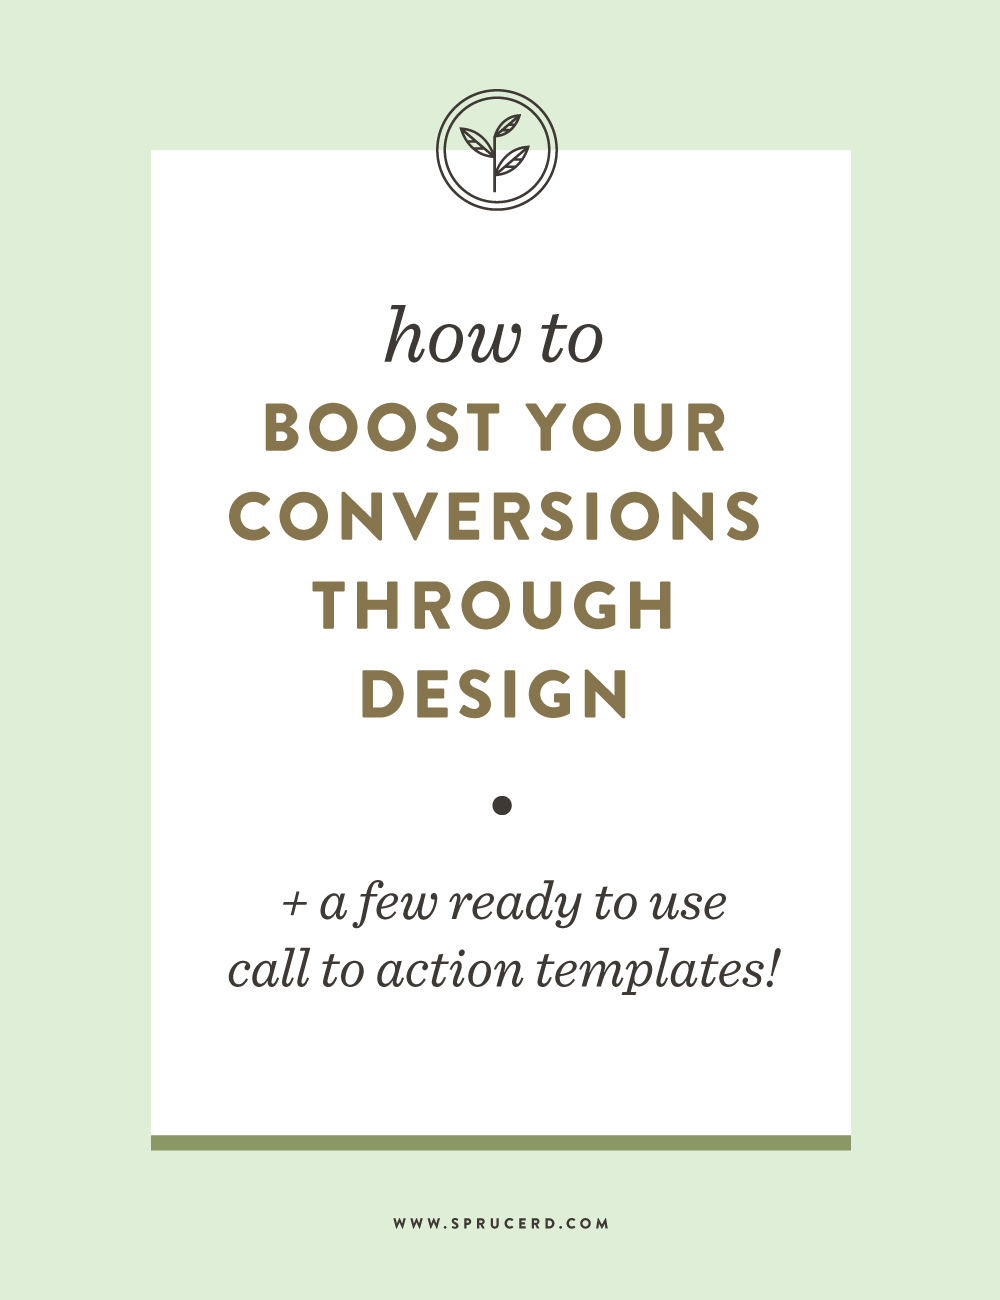 How to boost your conversions through design || You've done the work, but are just lacking the high conversion rate. Chances are, a few design tricks can help boost your conversions, and gain more sales. Here are a few tips that you can adjust today!